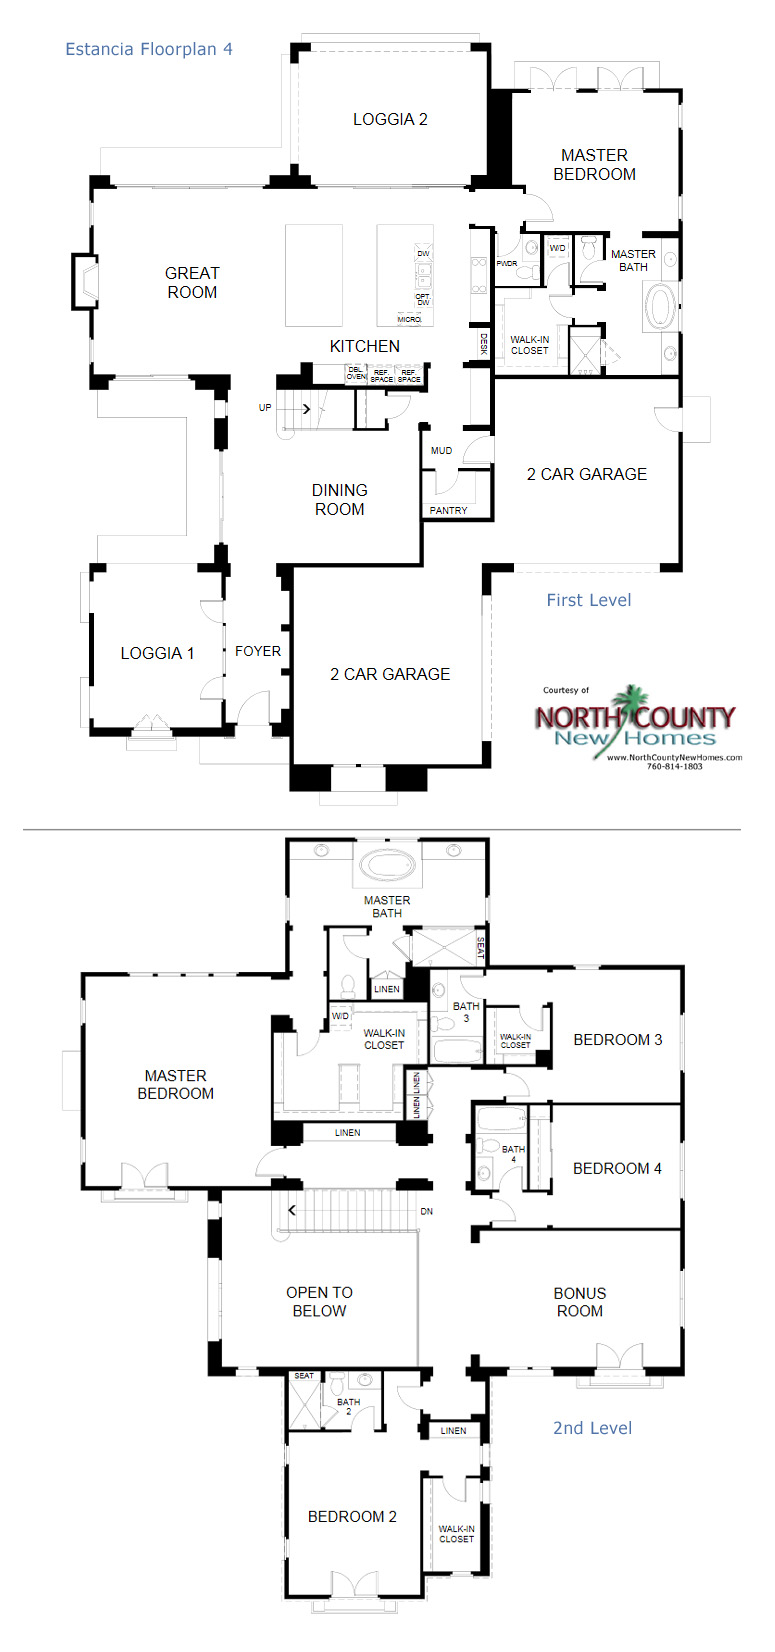 Floorplans for New homes now selling in Rancho Santa Fe... Estancia at Cielo in Rancho Santa Fe. New Construction homes in San Diego North County